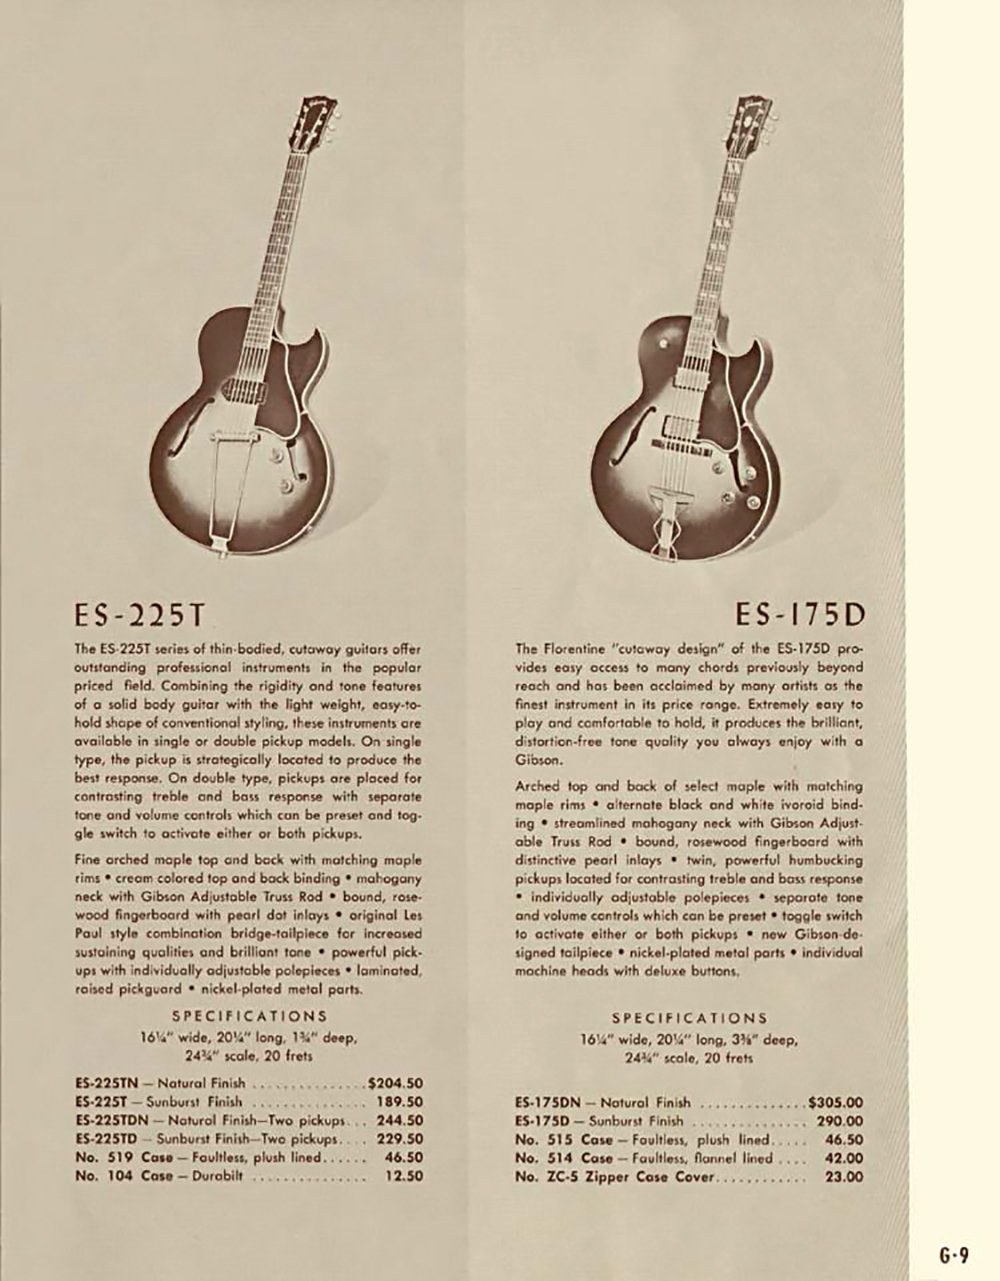 A page from the 1958 catalog showing the Thin Body ES-225T Model and Specs